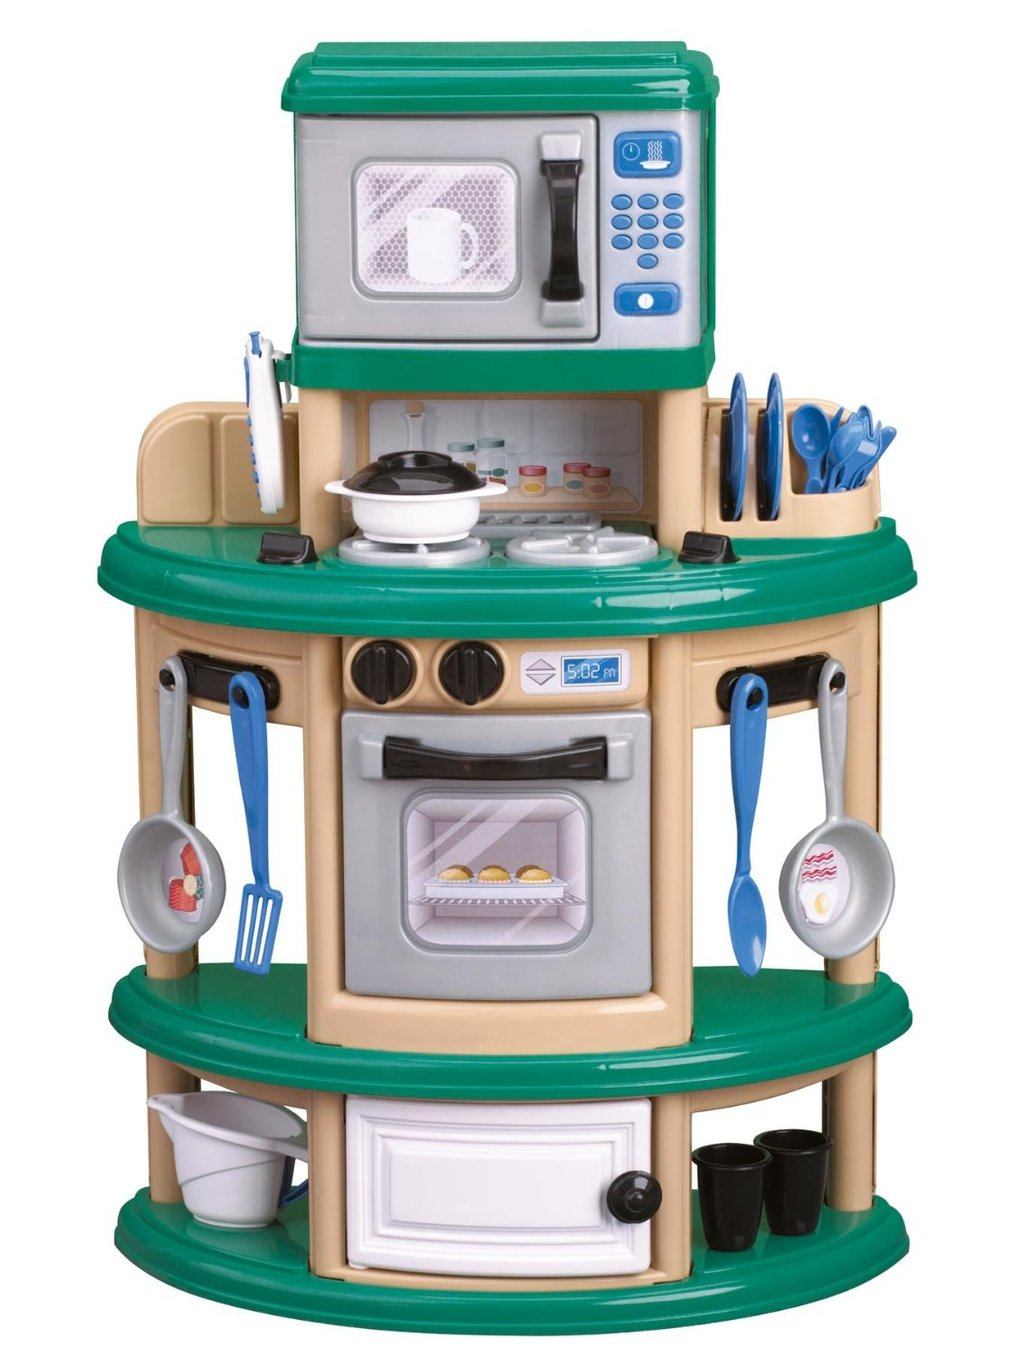 American Plastic Toy Kitchen Review Wooden Kitchen Playsets For Childhood Education